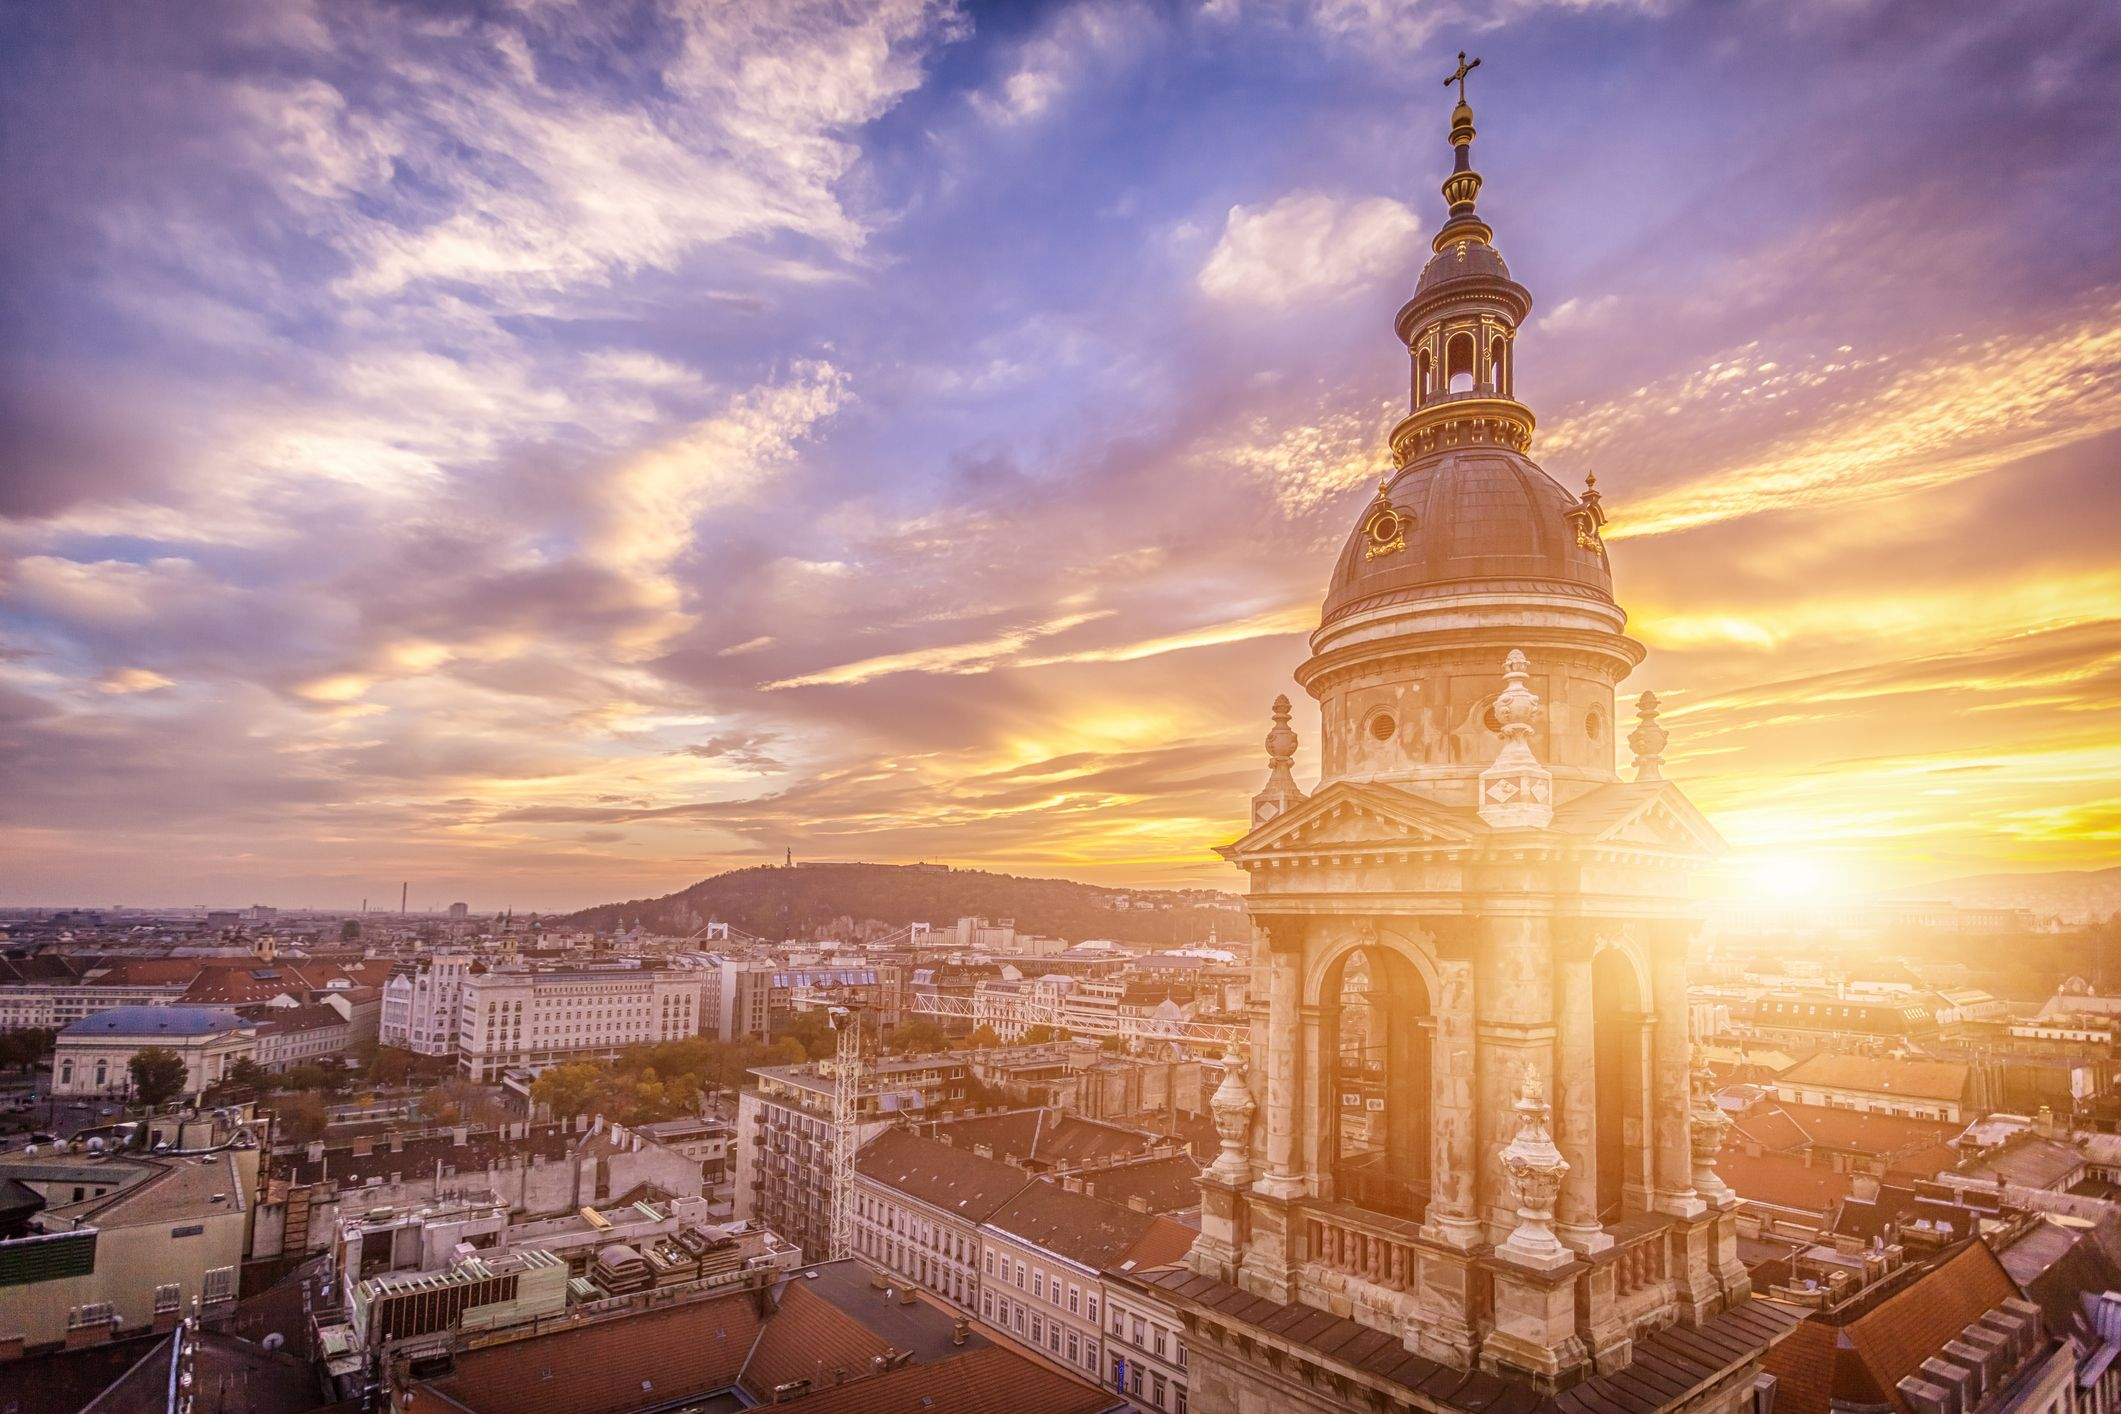 24 of the best cities in Europe that aren't incredibly obvious